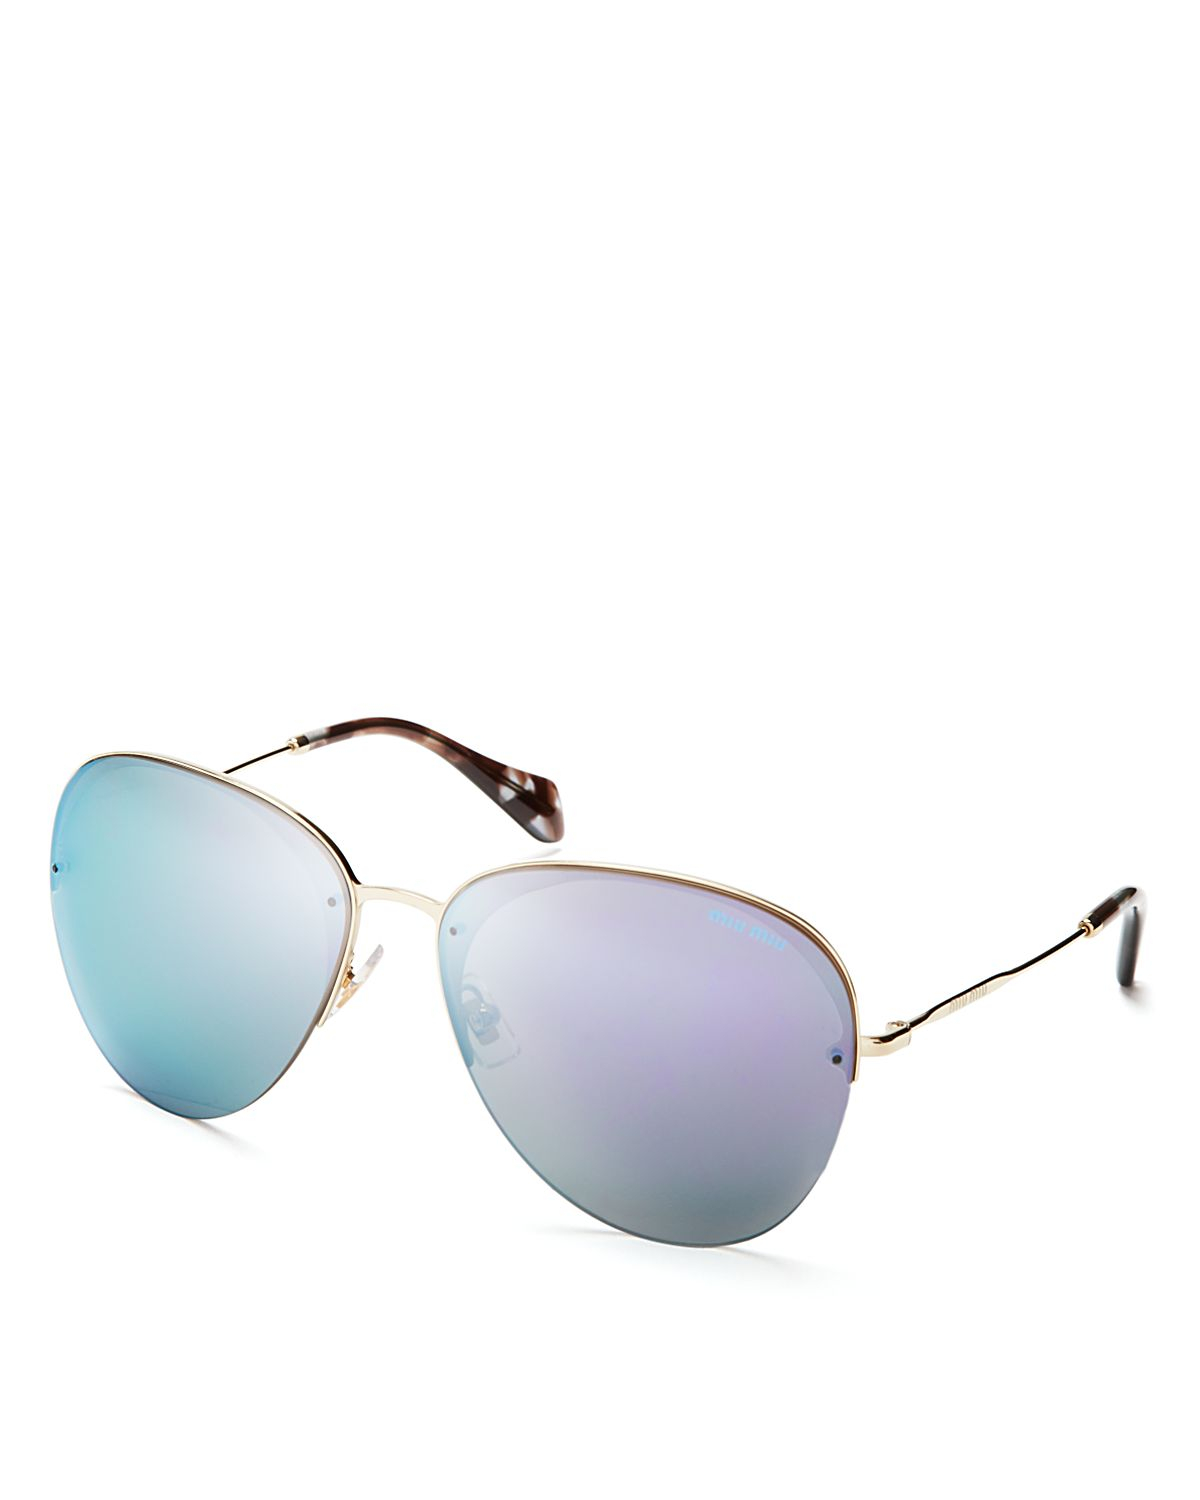 e941134753 Lyst - Miu Miu Mirrored Aviator Sunglasses